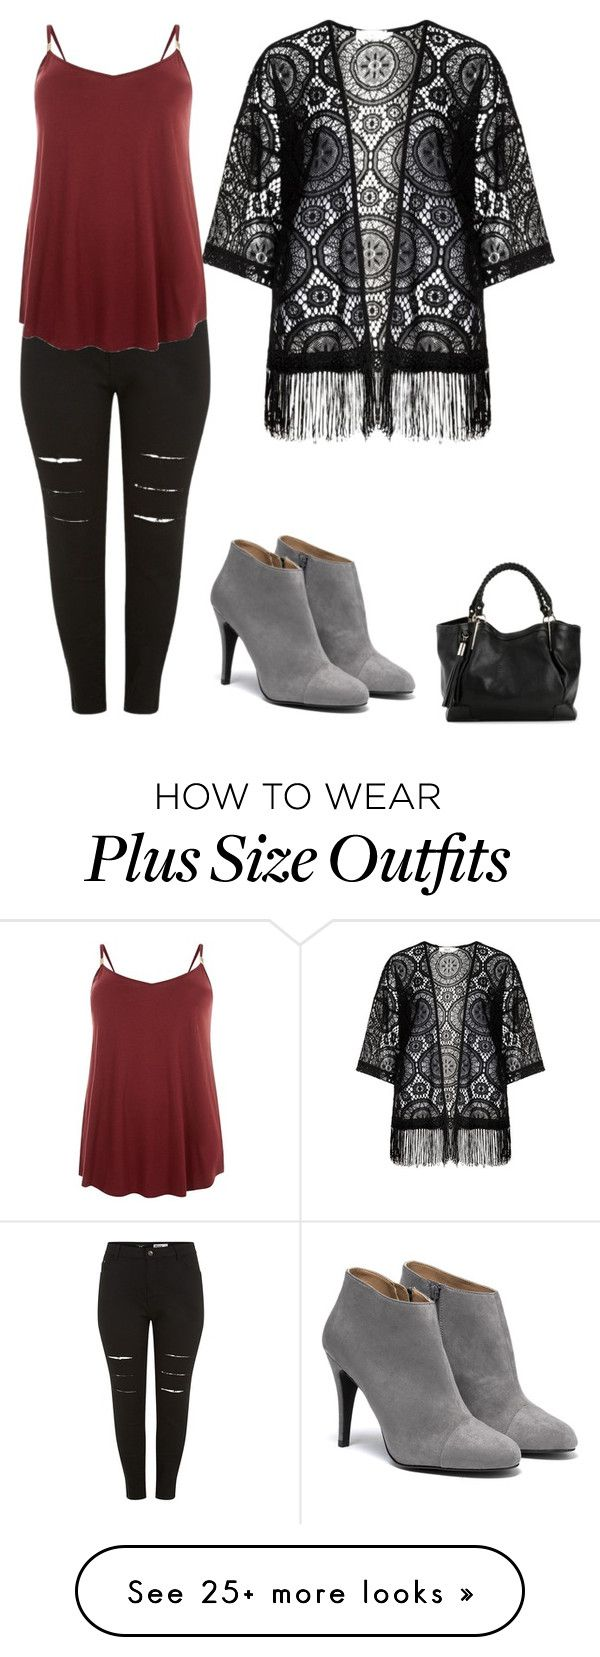 """Everyday "" by laura-lee-22 on Polyvore featuring Zizzi"